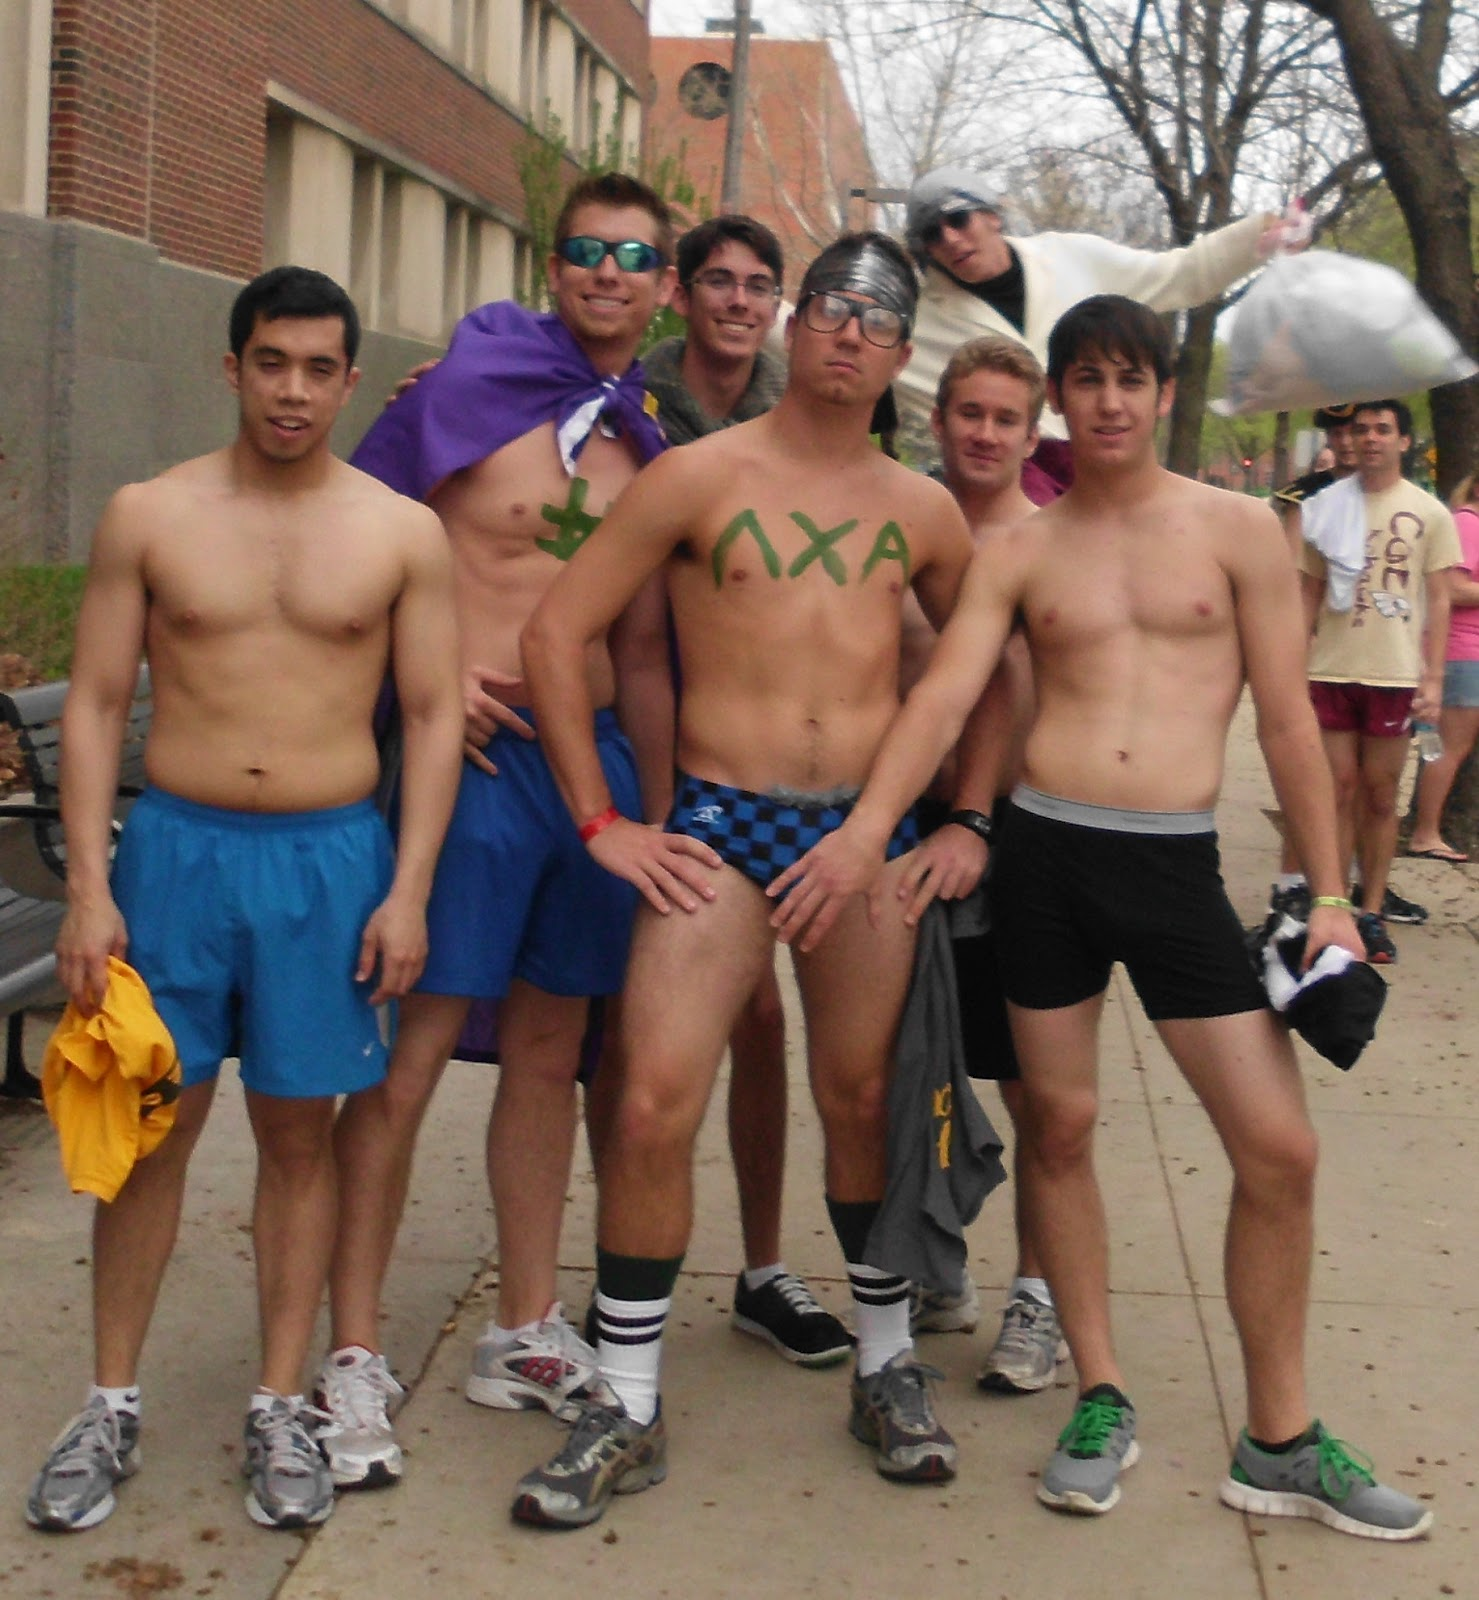 Naked college dudes running #11